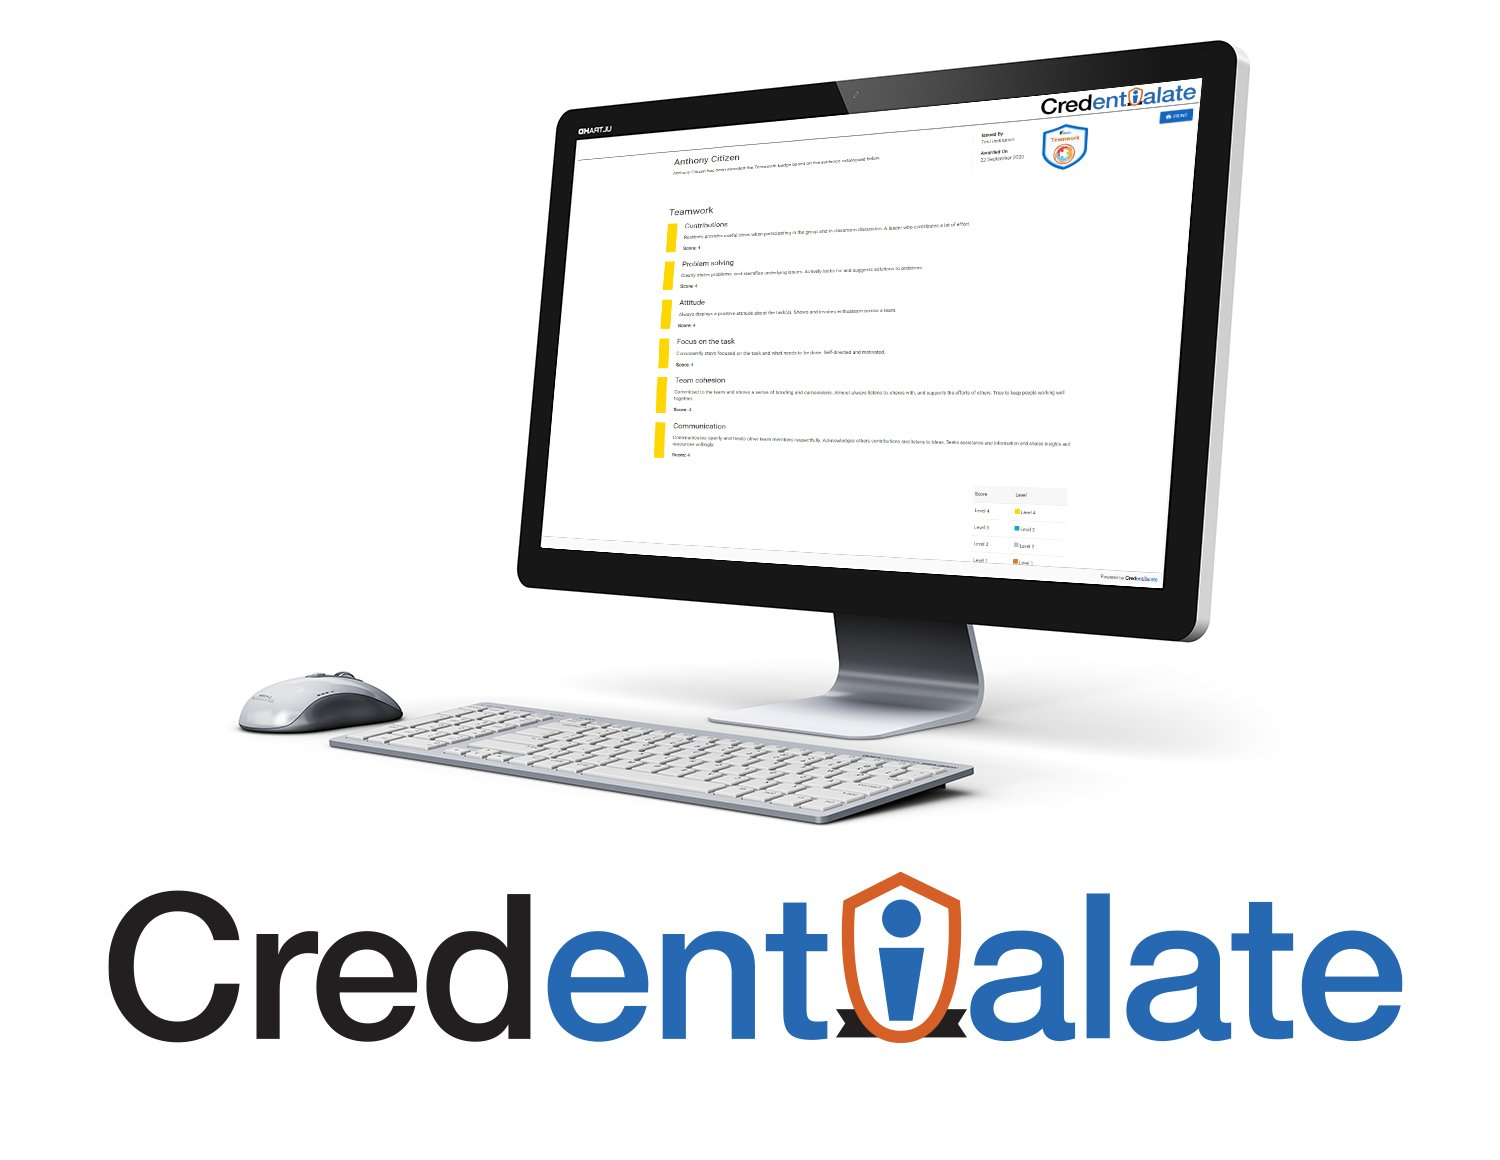 Credentialate - The ONLY Micro-Credential With Learner-Level Evidence in the Digital Badge